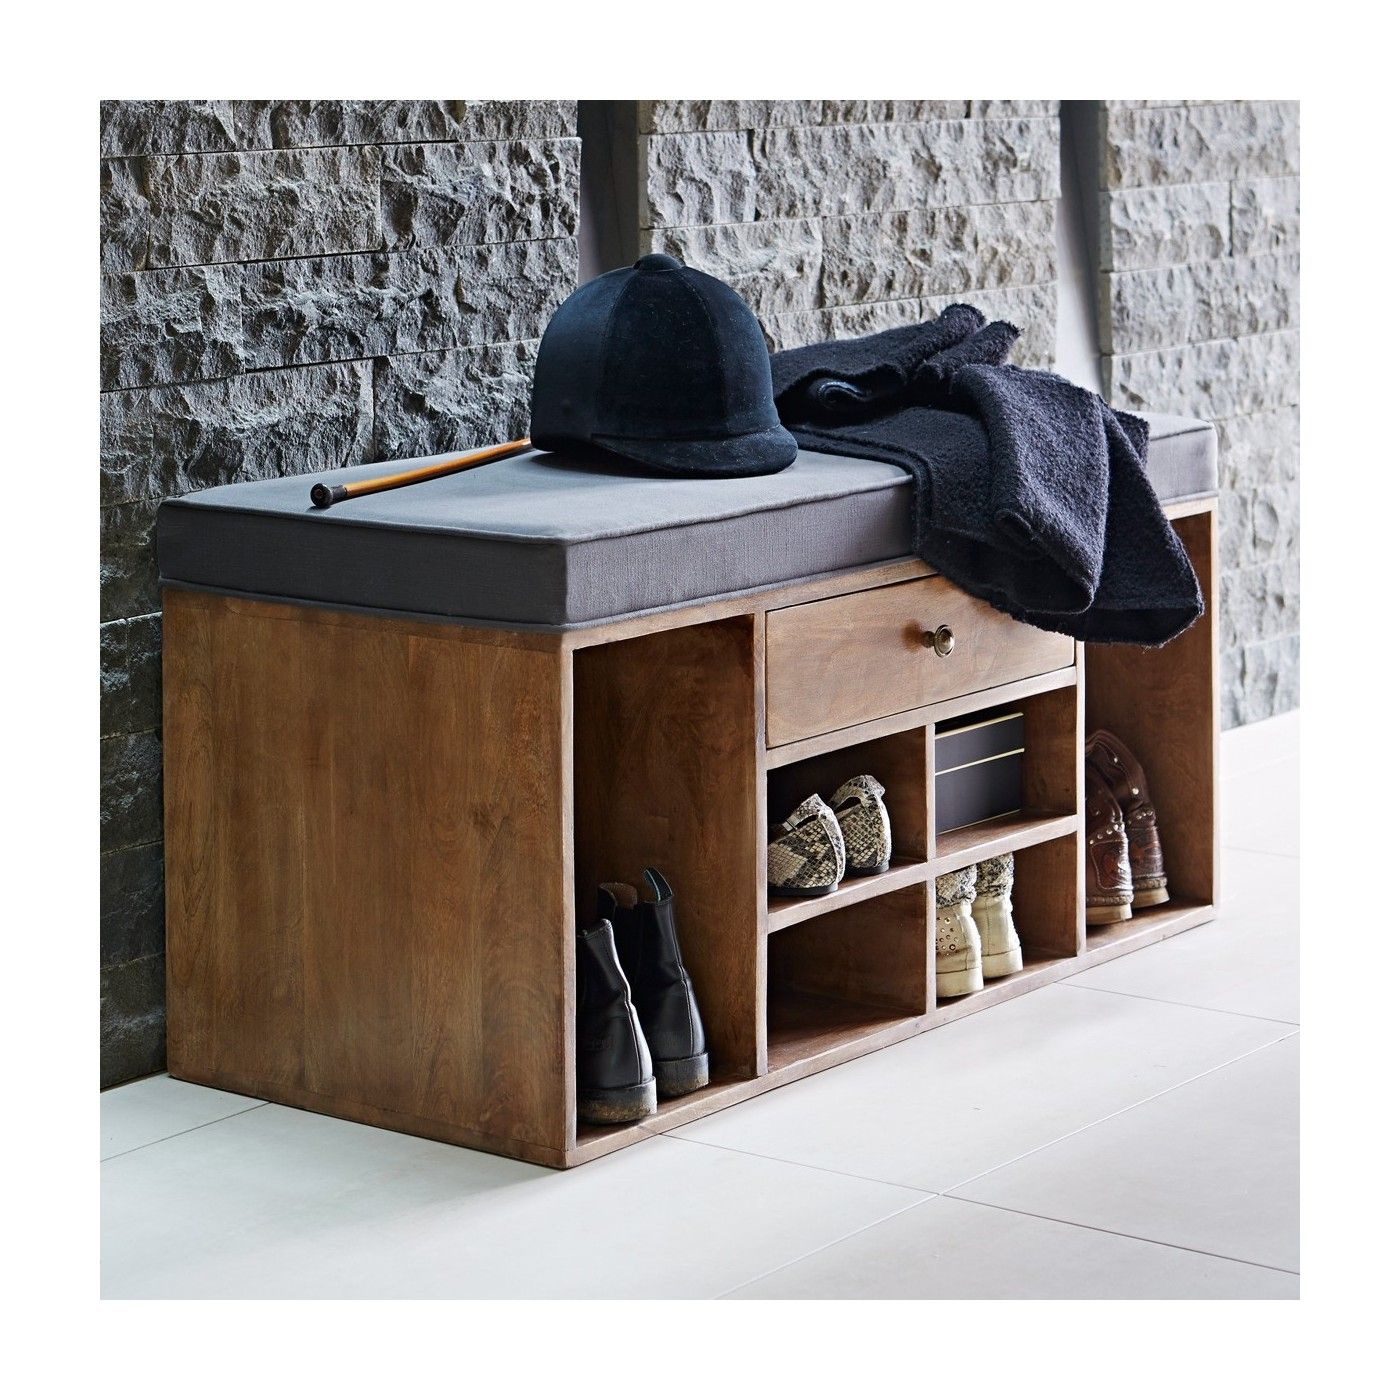 bench with and espresso of design cushion storage wood totes drawer drawers inch